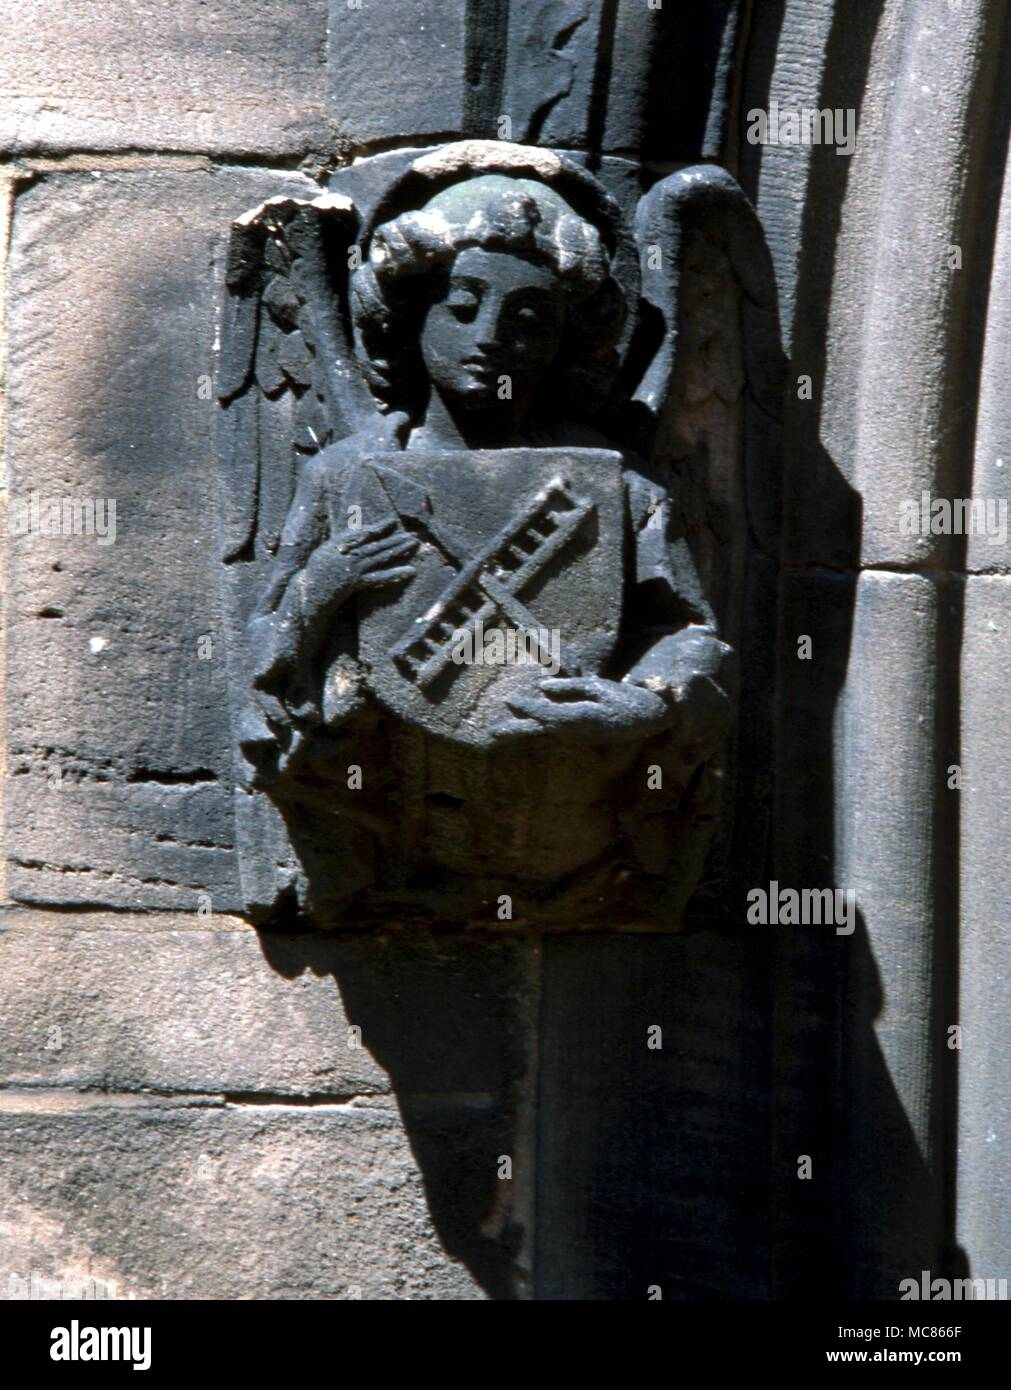 MYTHS Stone angel holding a heraldic device of the 'Arma Christi' - the instruments which caused Christ's suffering on the cross. On the porch of the parish church, Middlwich Stock Photo